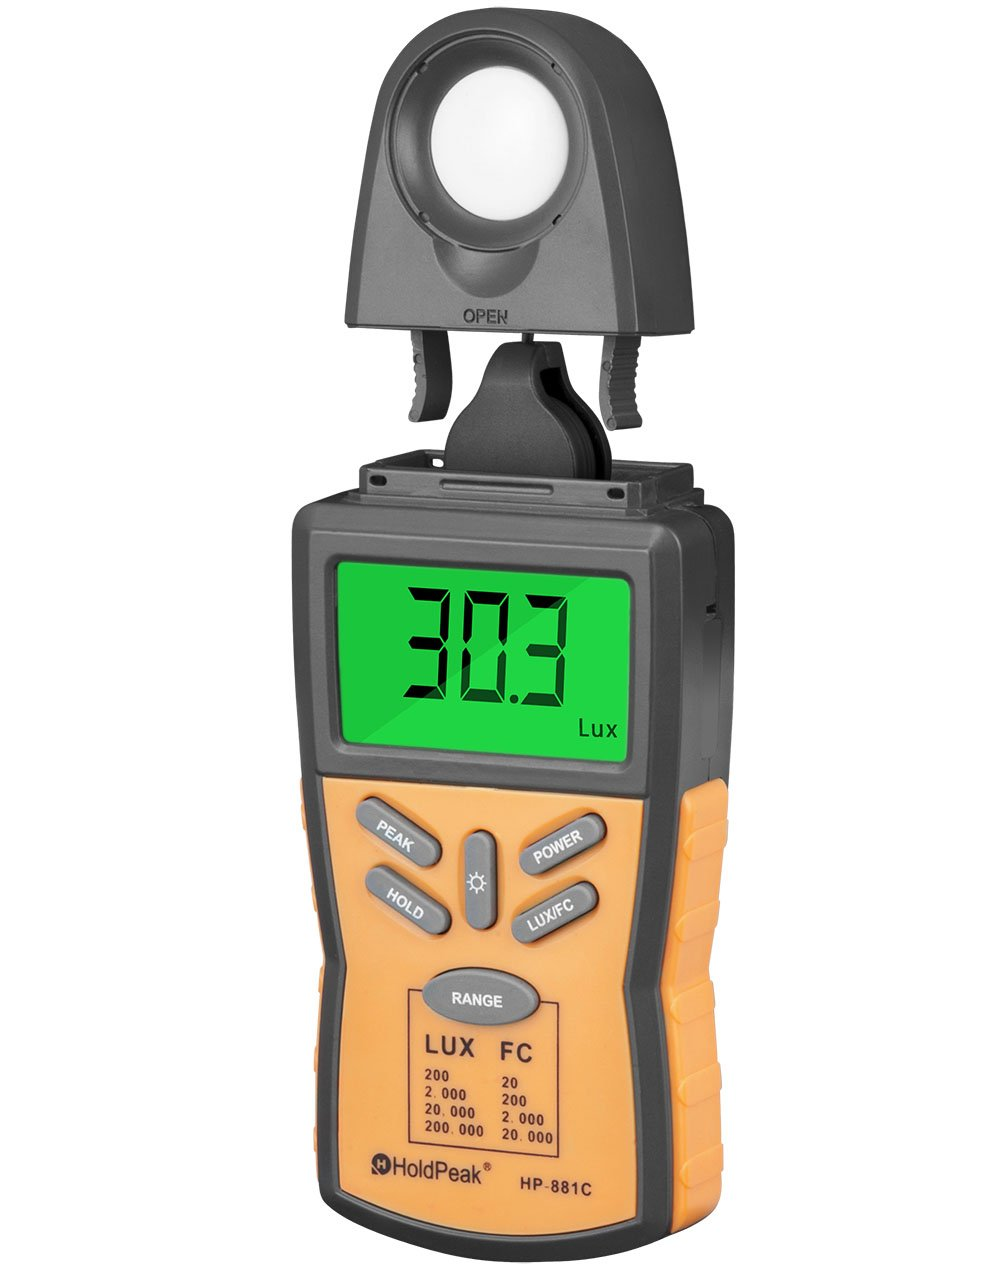 HOLDPEAK 881C Digital Illuminance/Light Meter, Lux Light Meter with Peak Hold, Lux/FC Unit, Data Hold and Backlight, Range 0.1-200,000 Lux, 0.01-20,000 FC and LCD display